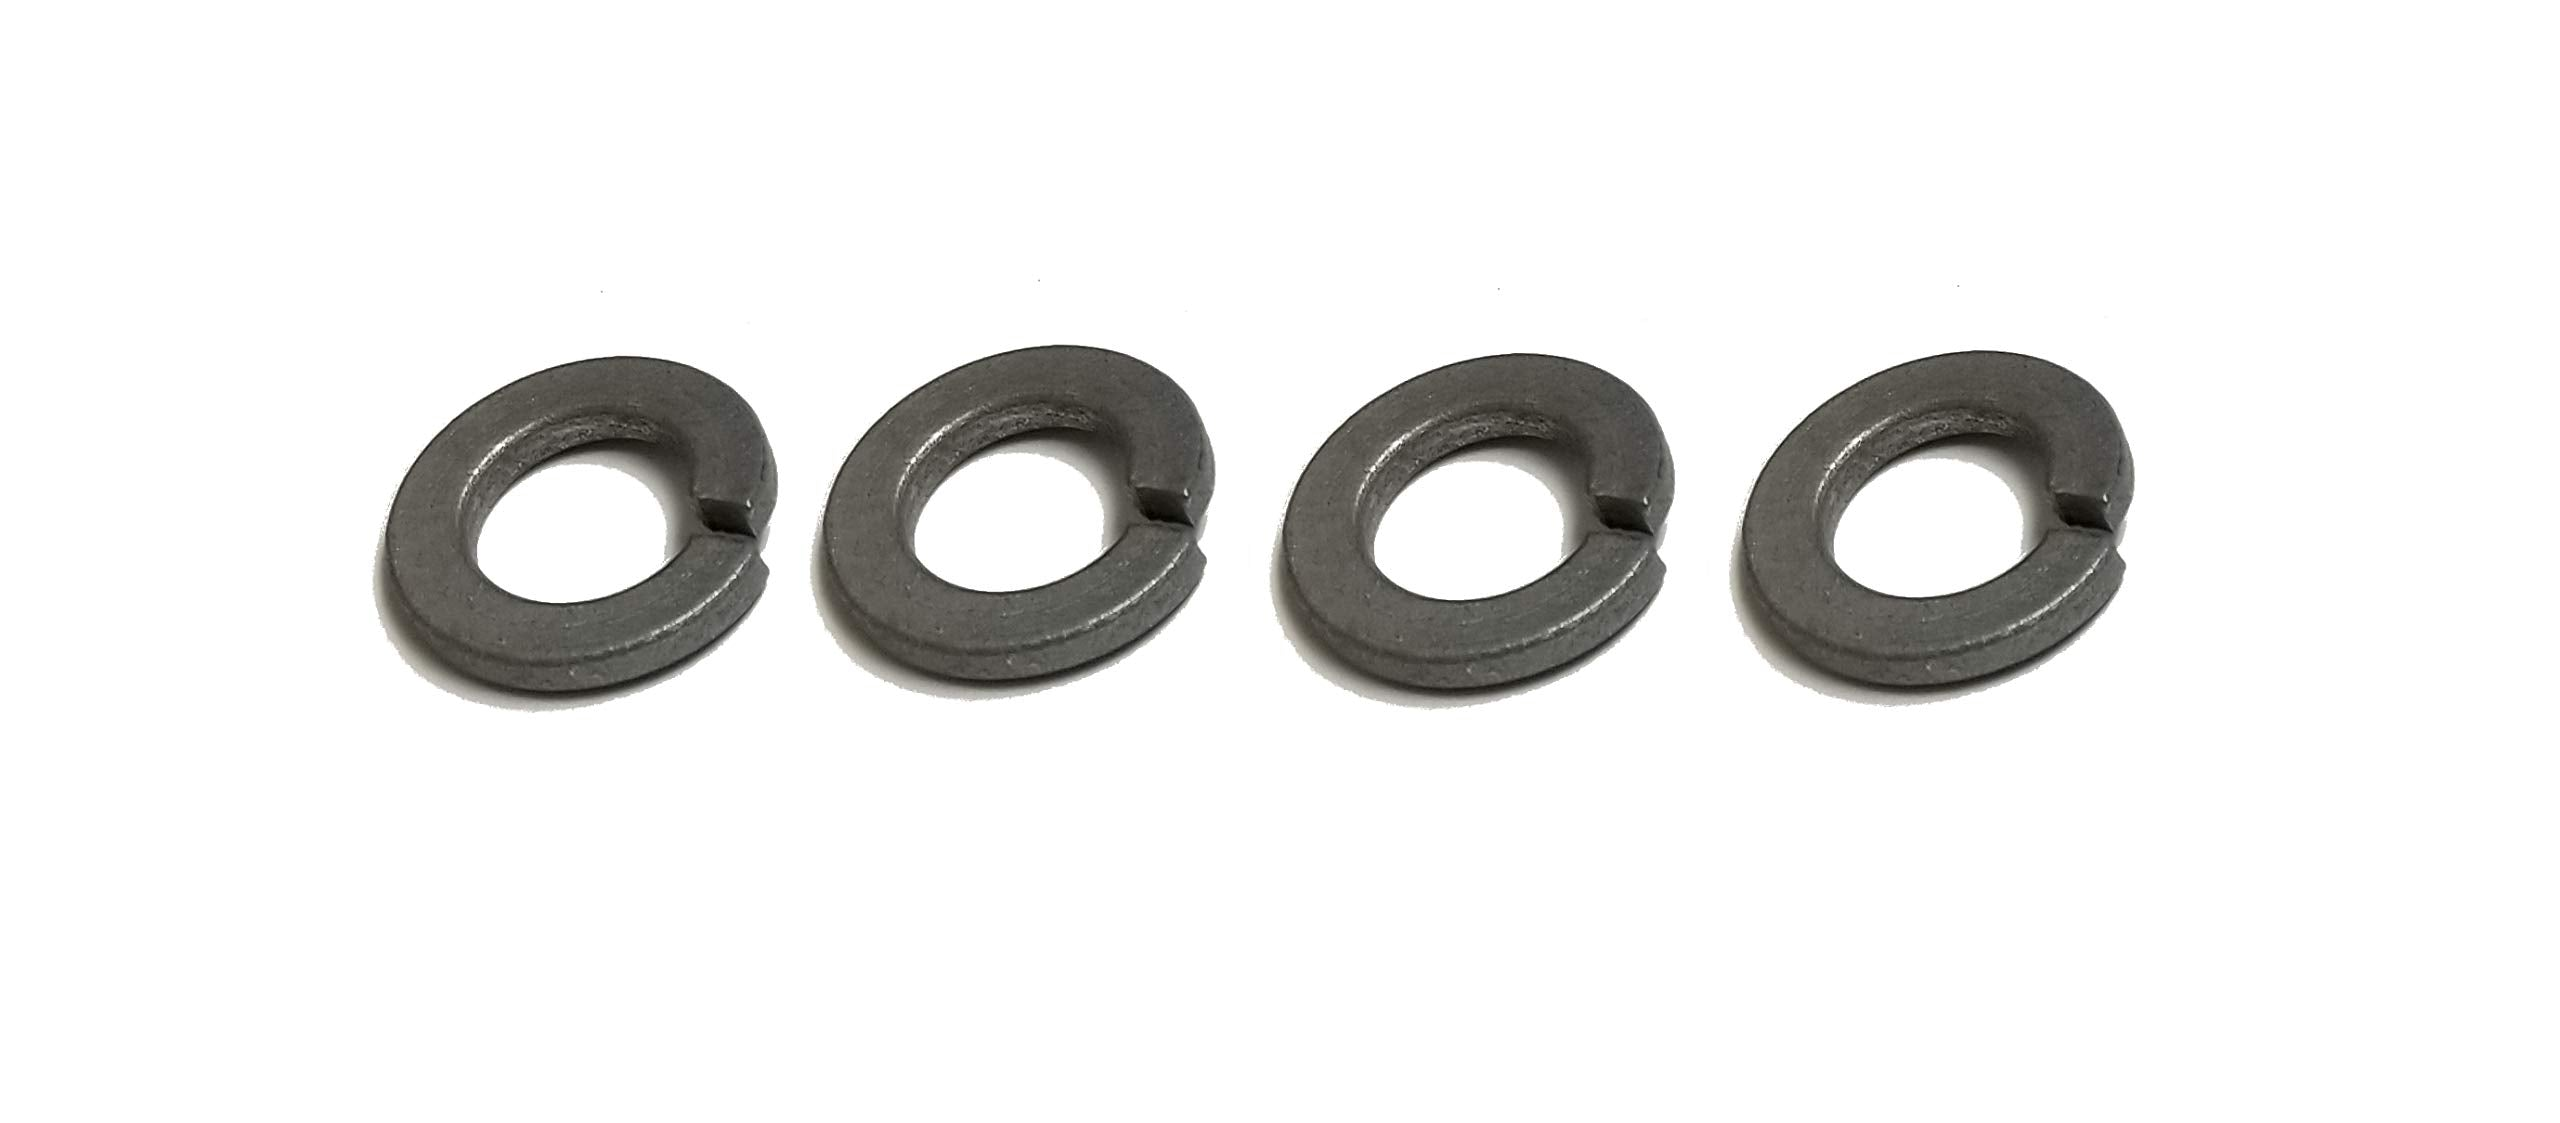 John Deere Original Equipment Lock Washer (4 Pack) - 12M7065